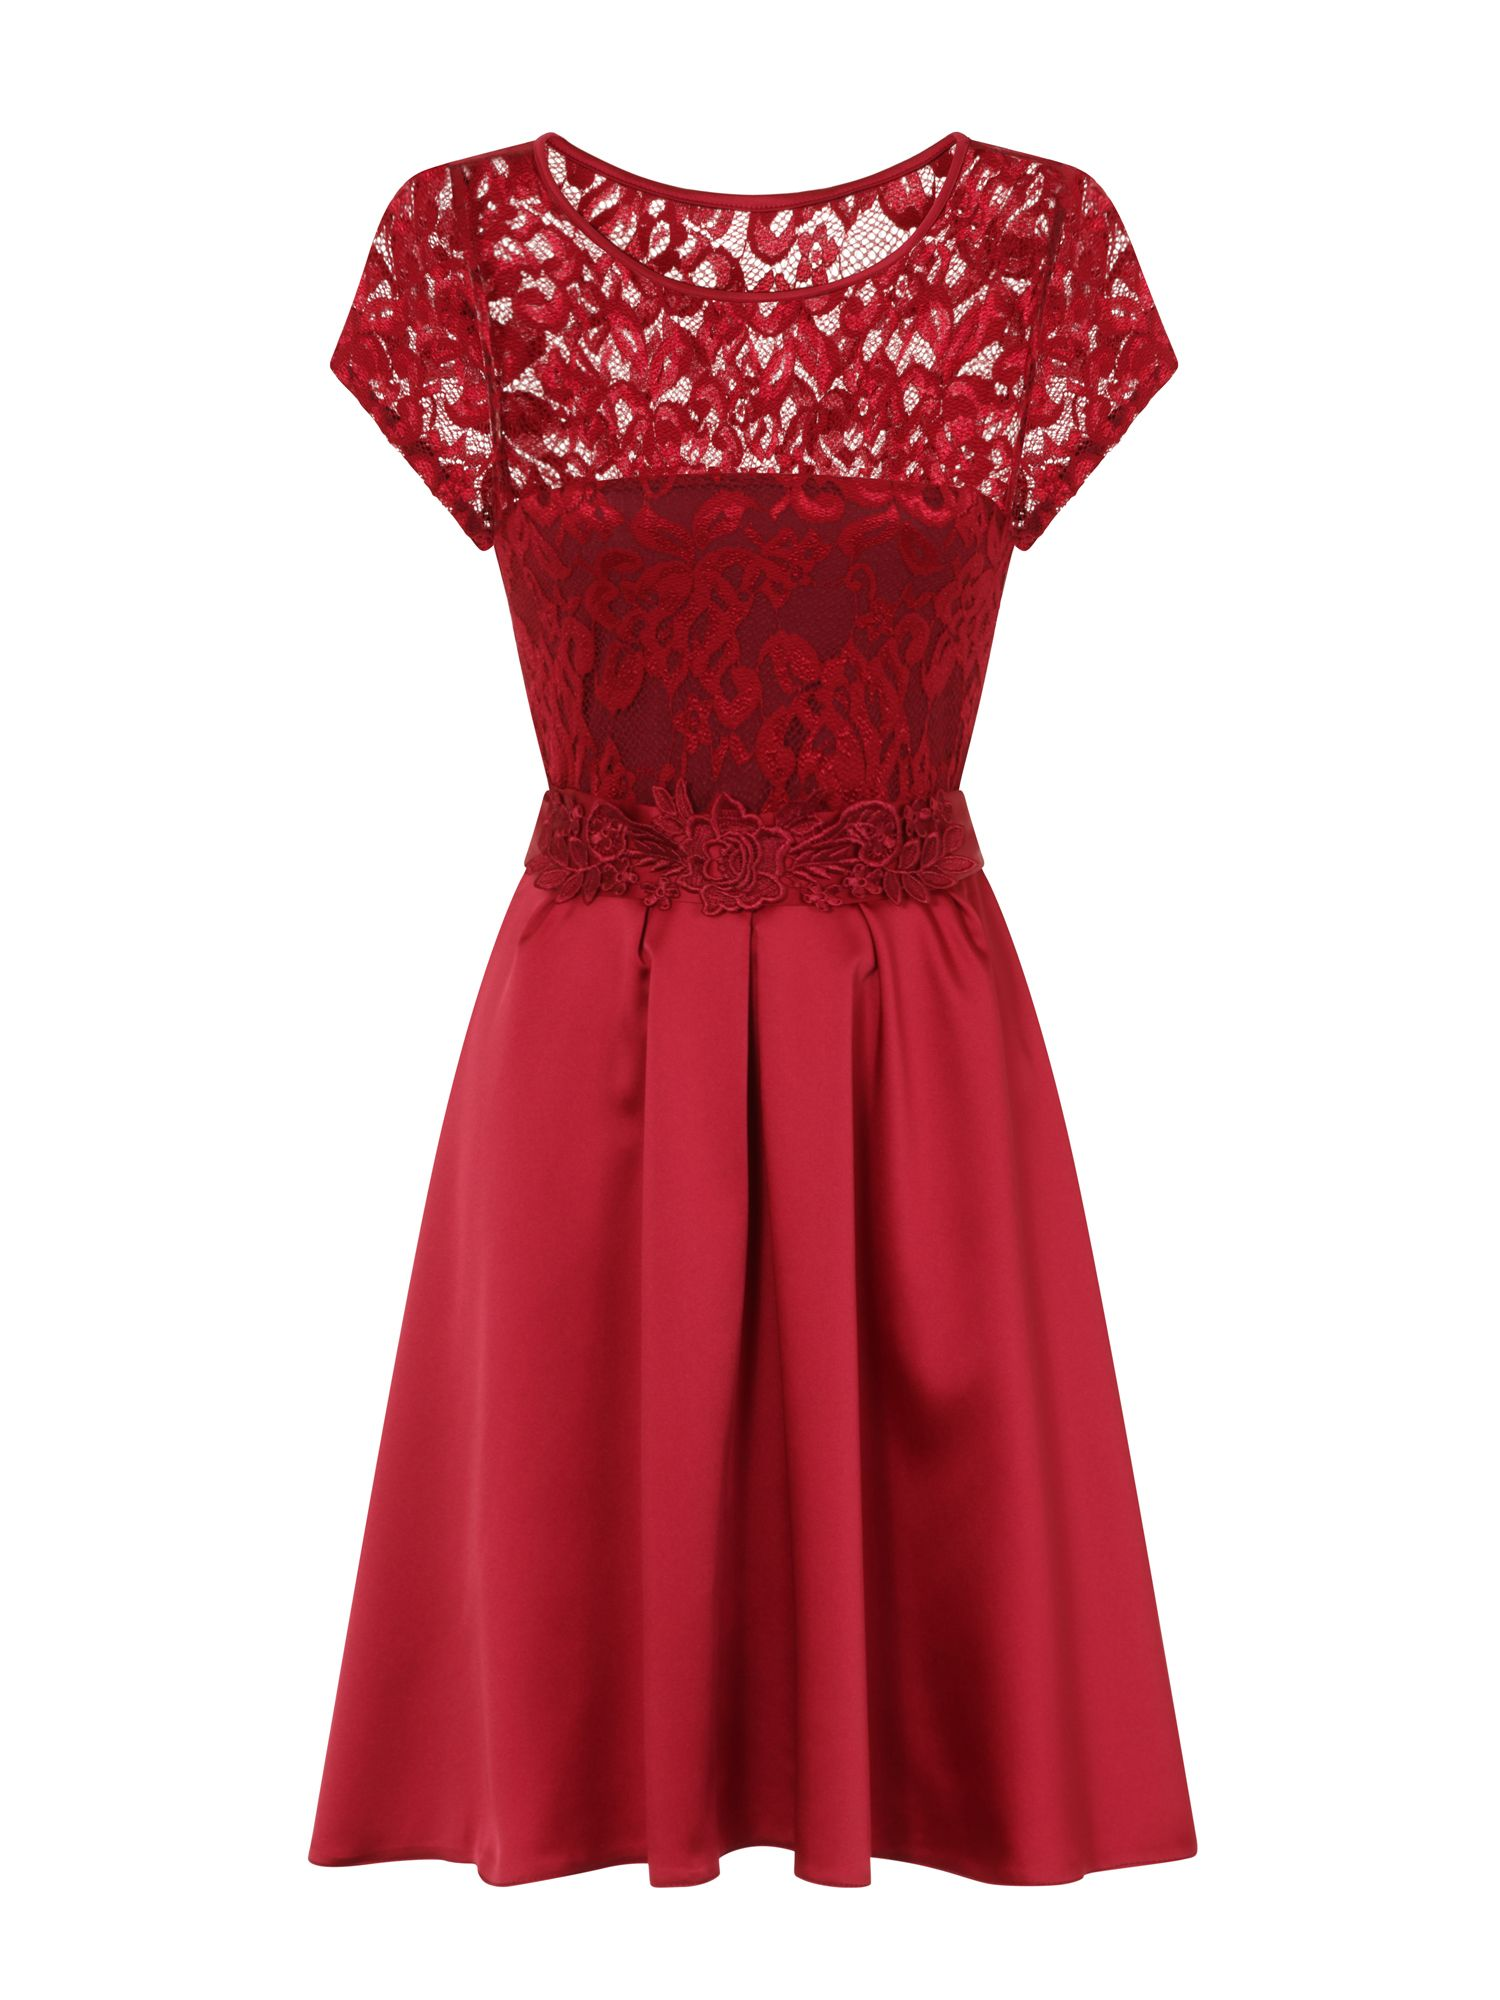 HotSquash Lace Ana Party Dress in Clever Fabric, Red